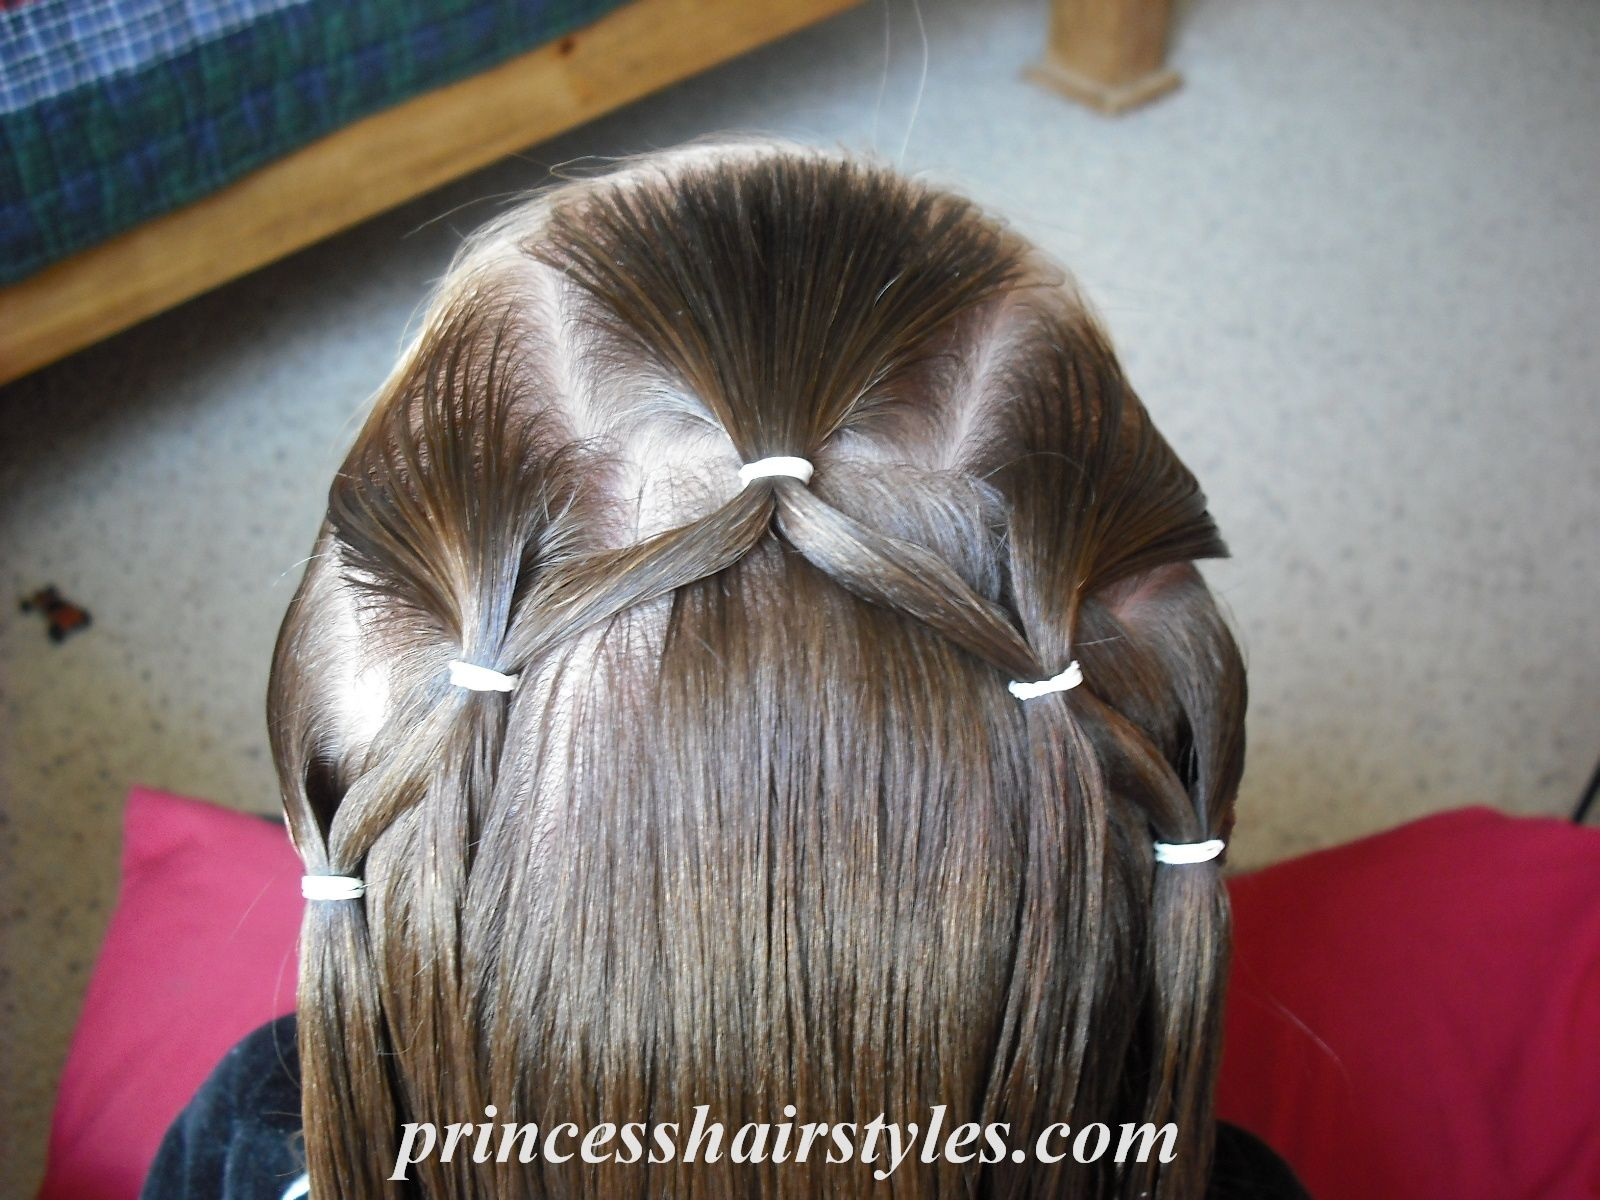 Flower girl hairstyle aliyaus hair ideas pinterest princess